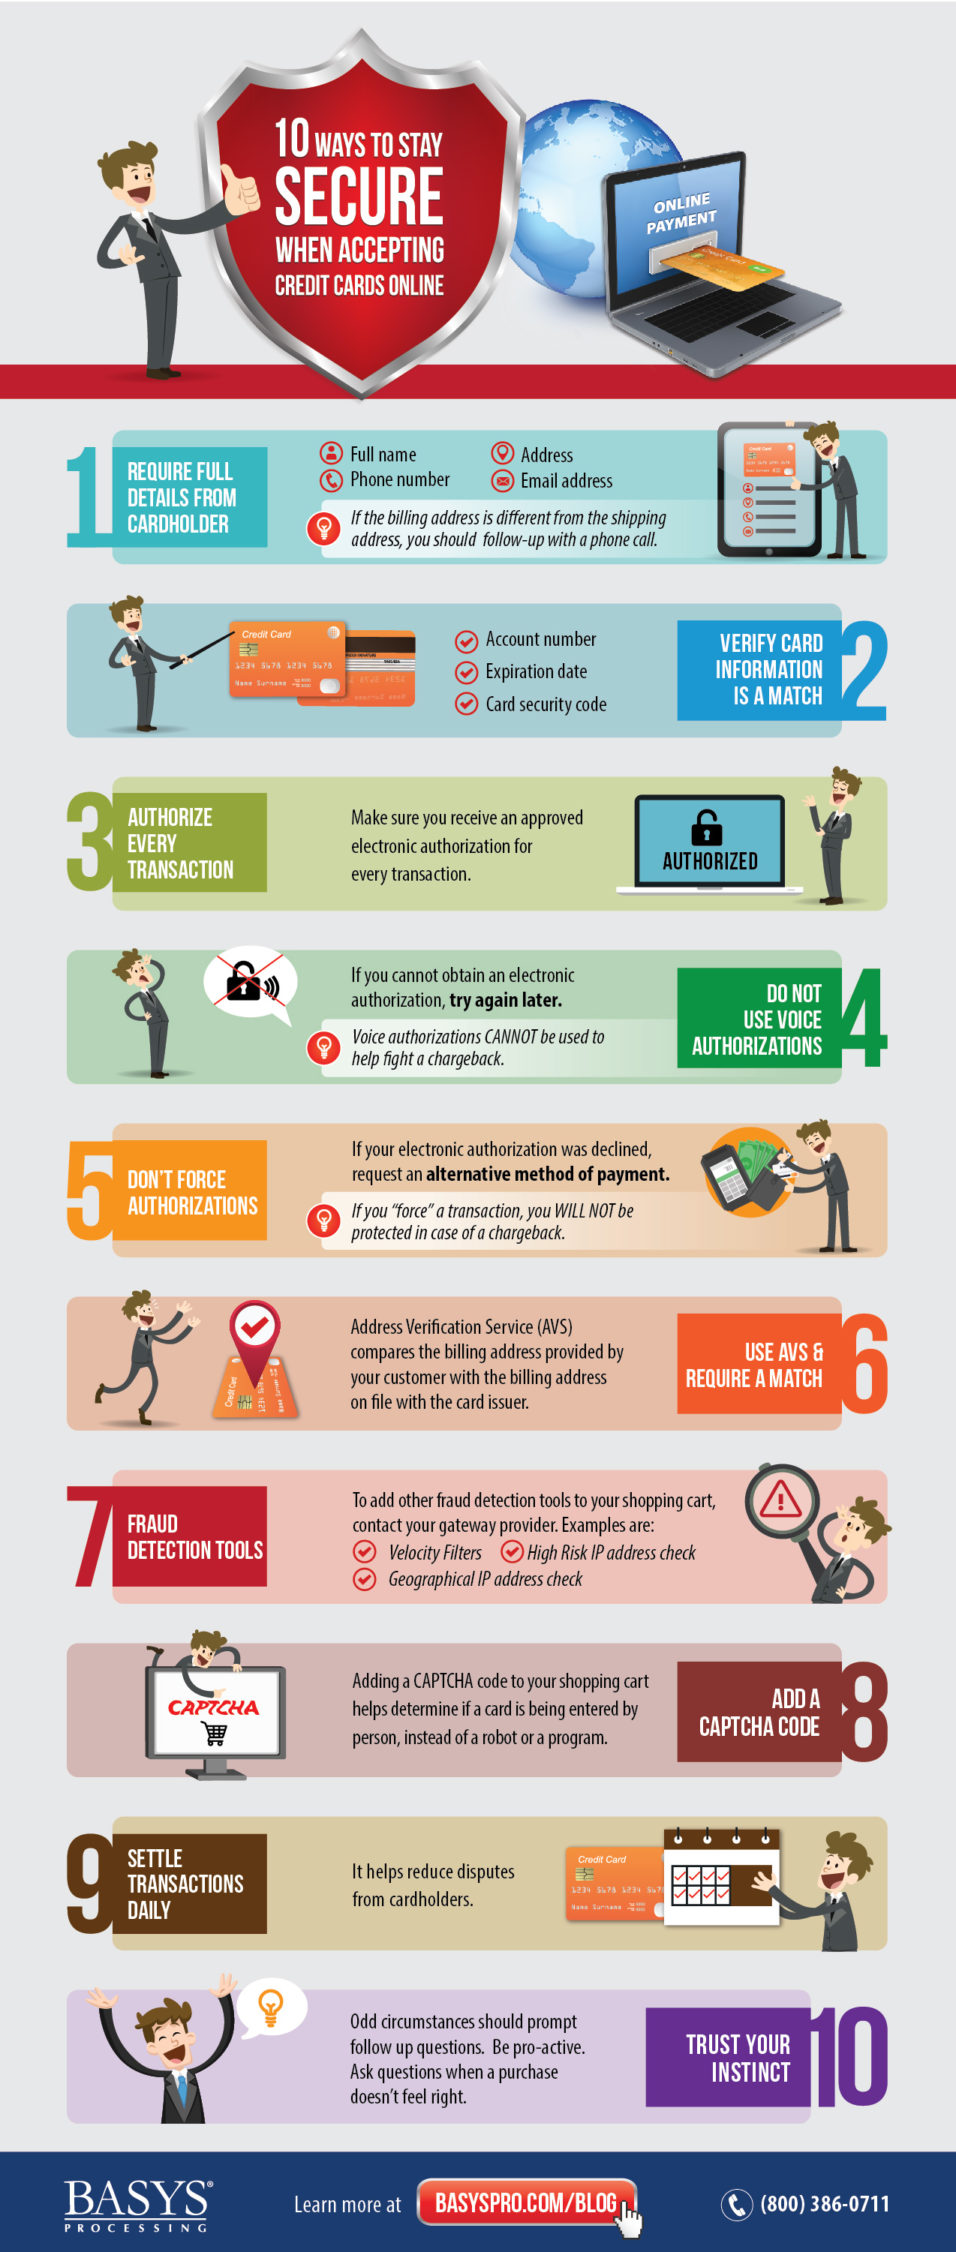 BASYS Processing 10 Ways to Stay Secure when Accepting Credit Cards Online infographic